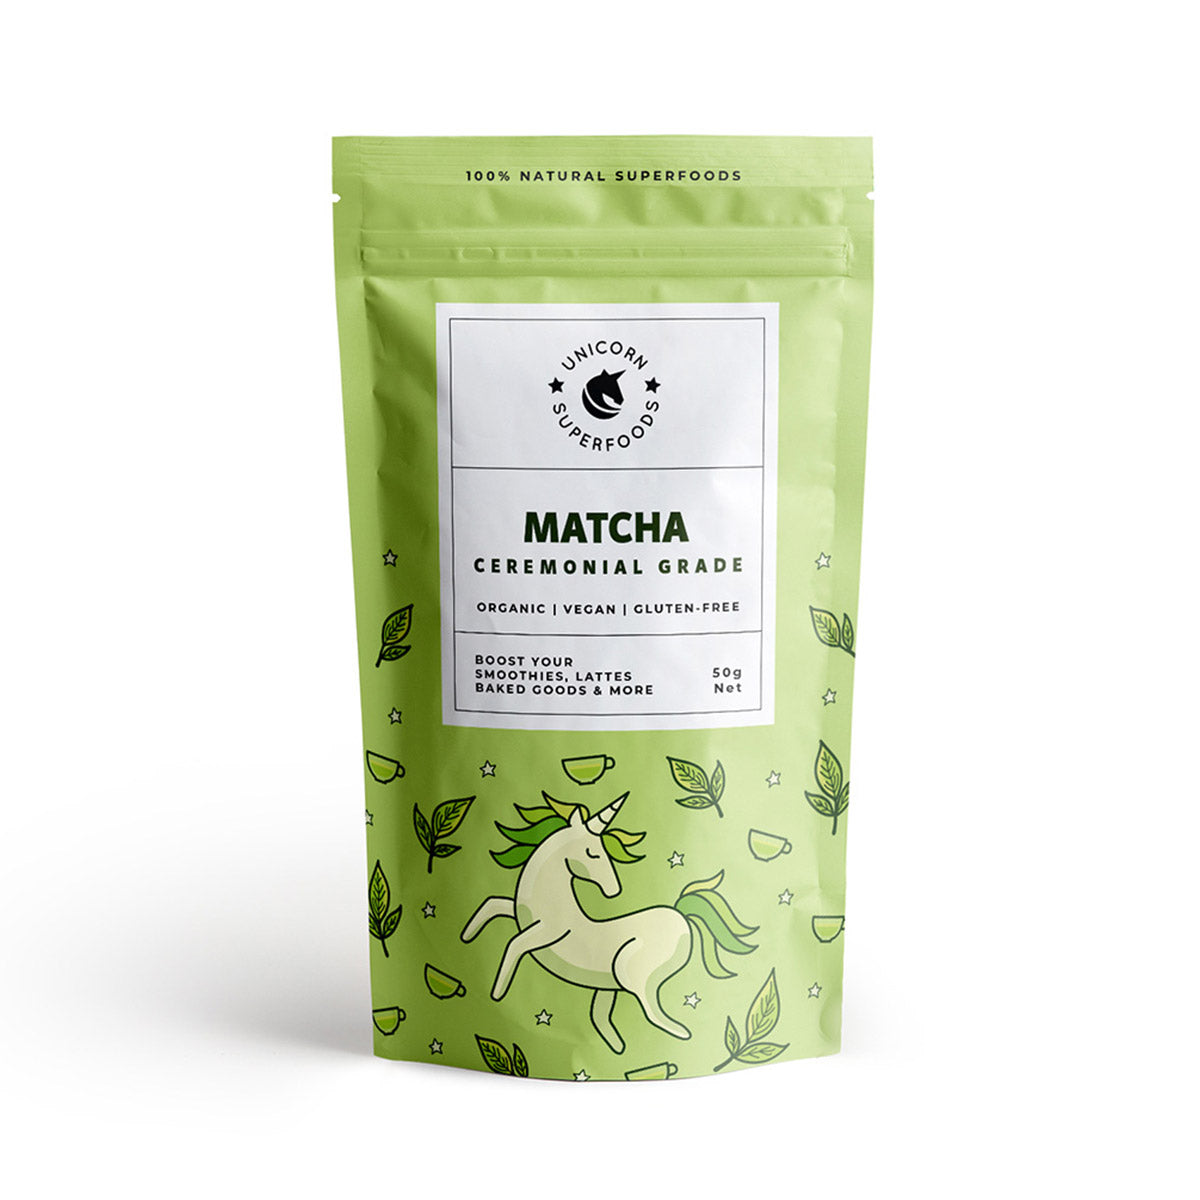 Ceremonial matcha powder